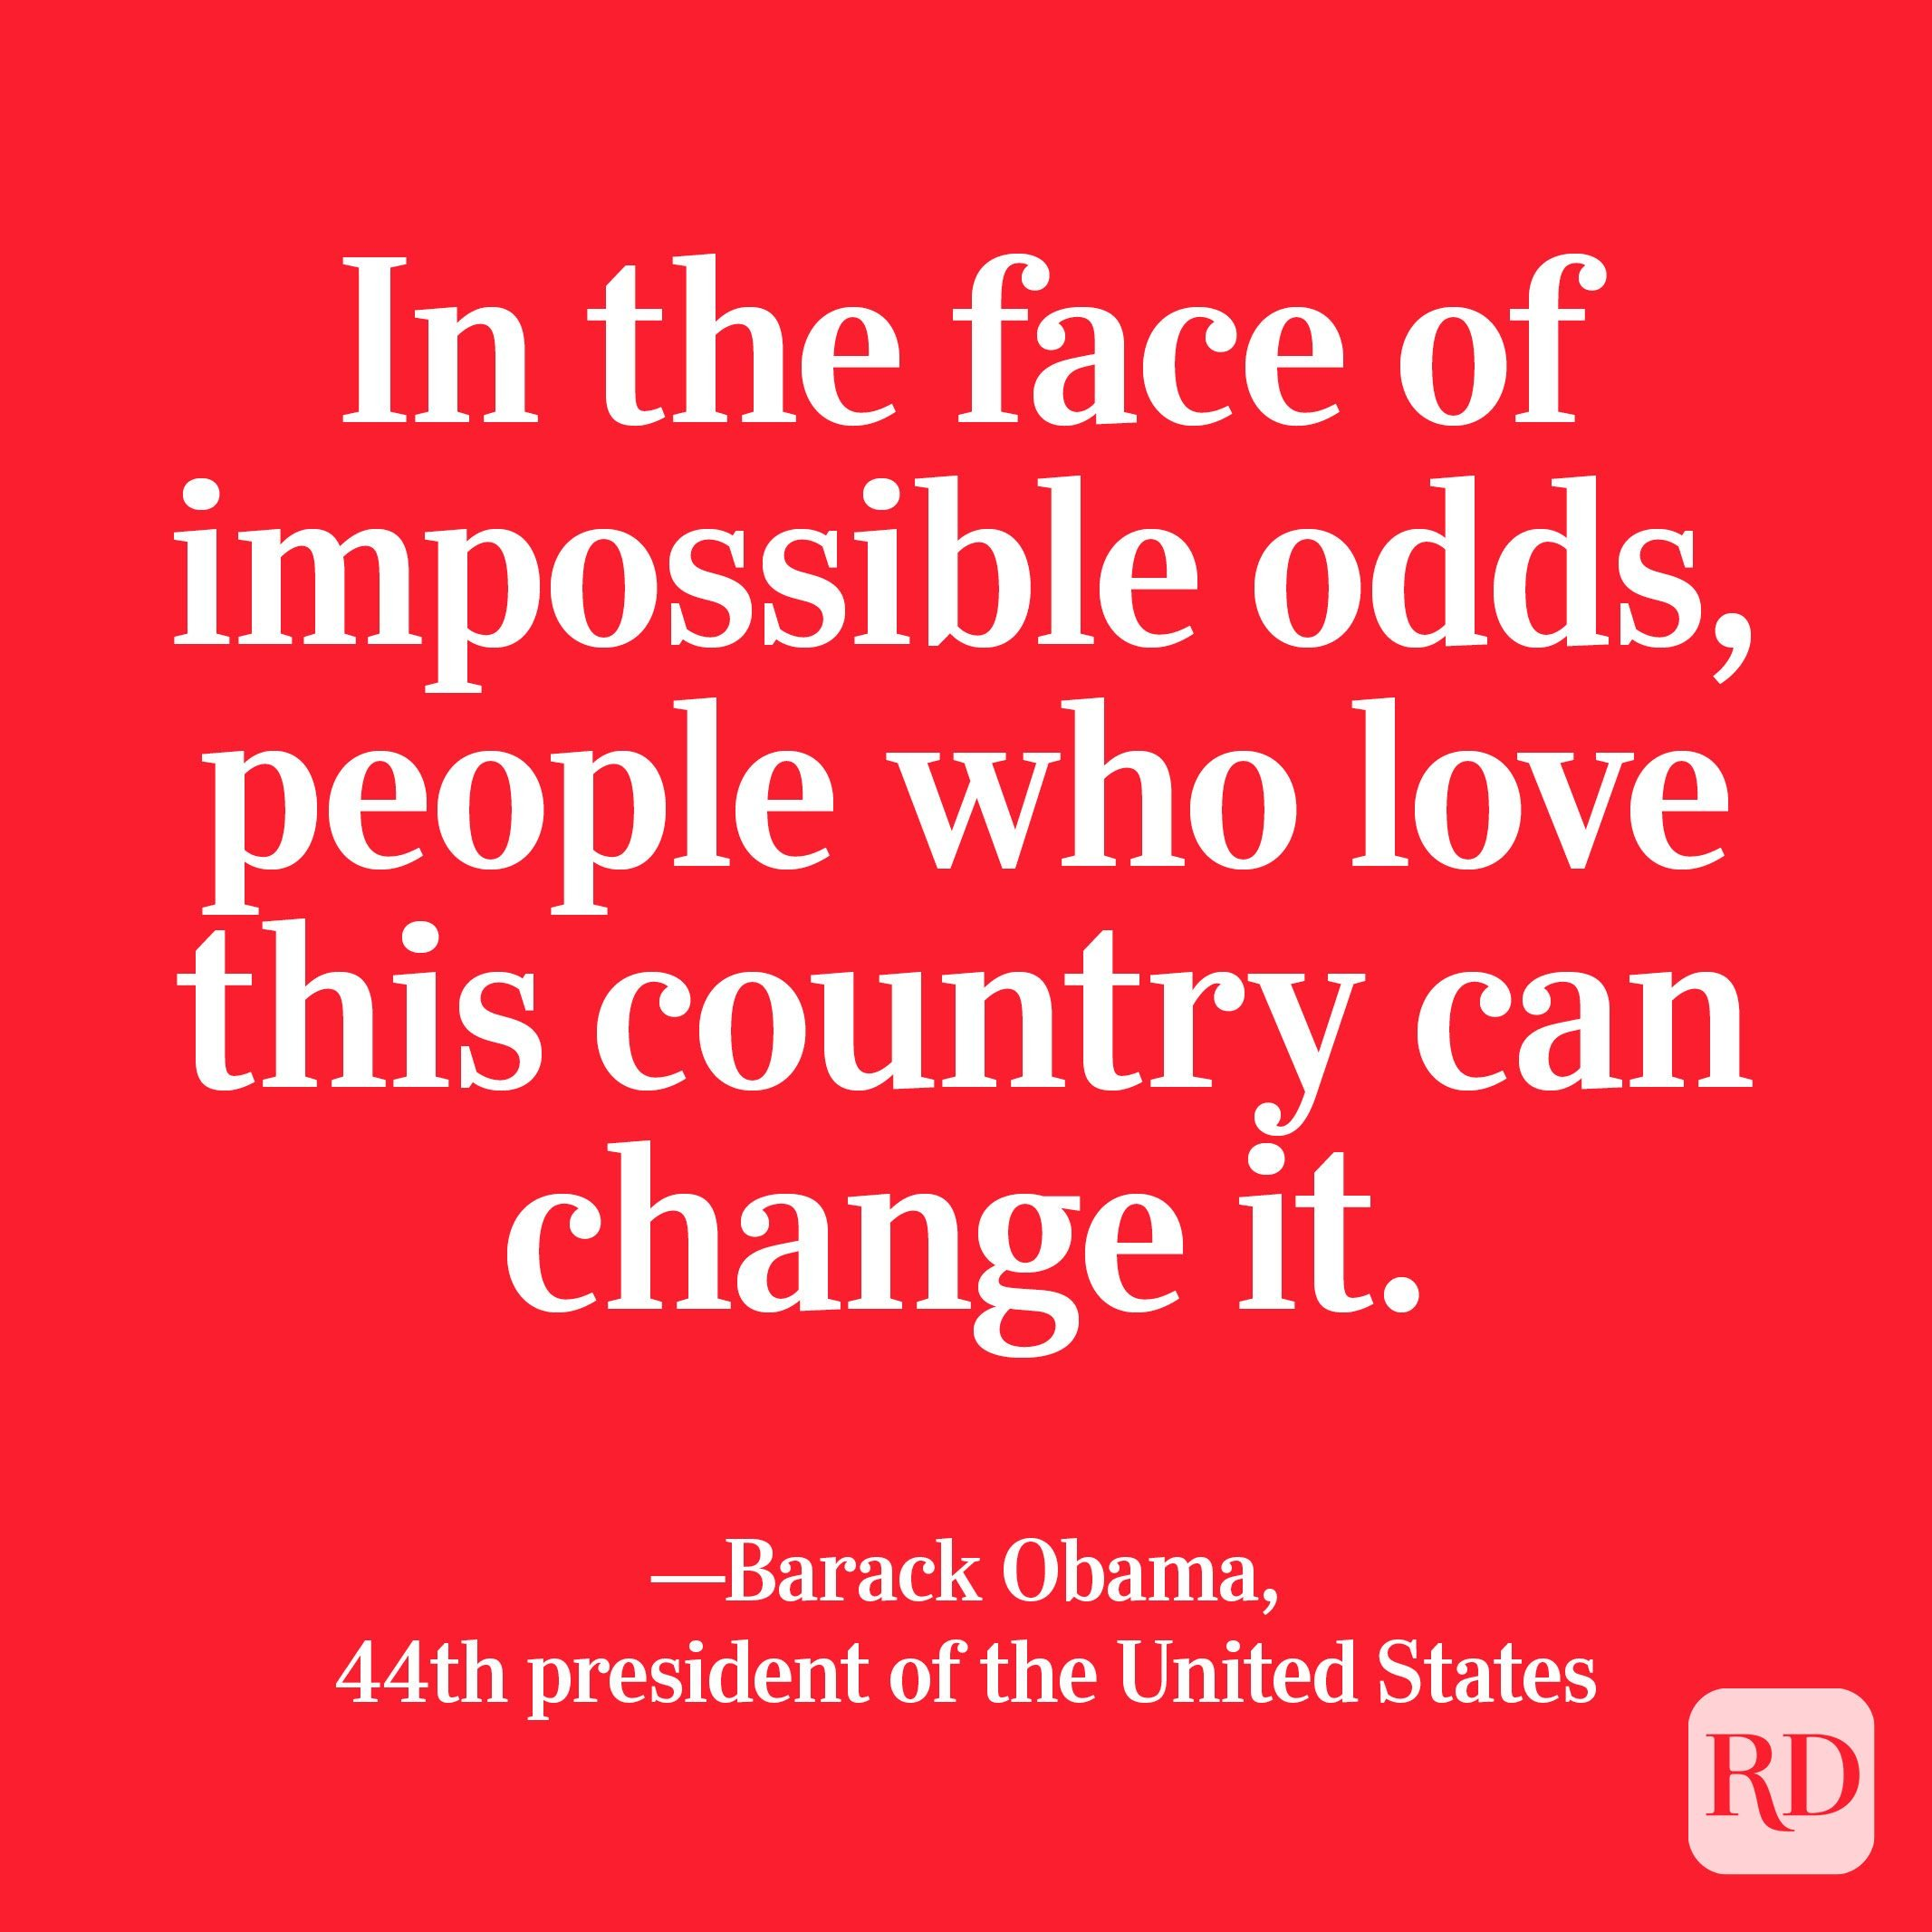 """""""In the face of impossible odds, people who love this country can change it."""" —Barack Obama, 44th president of the United States"""